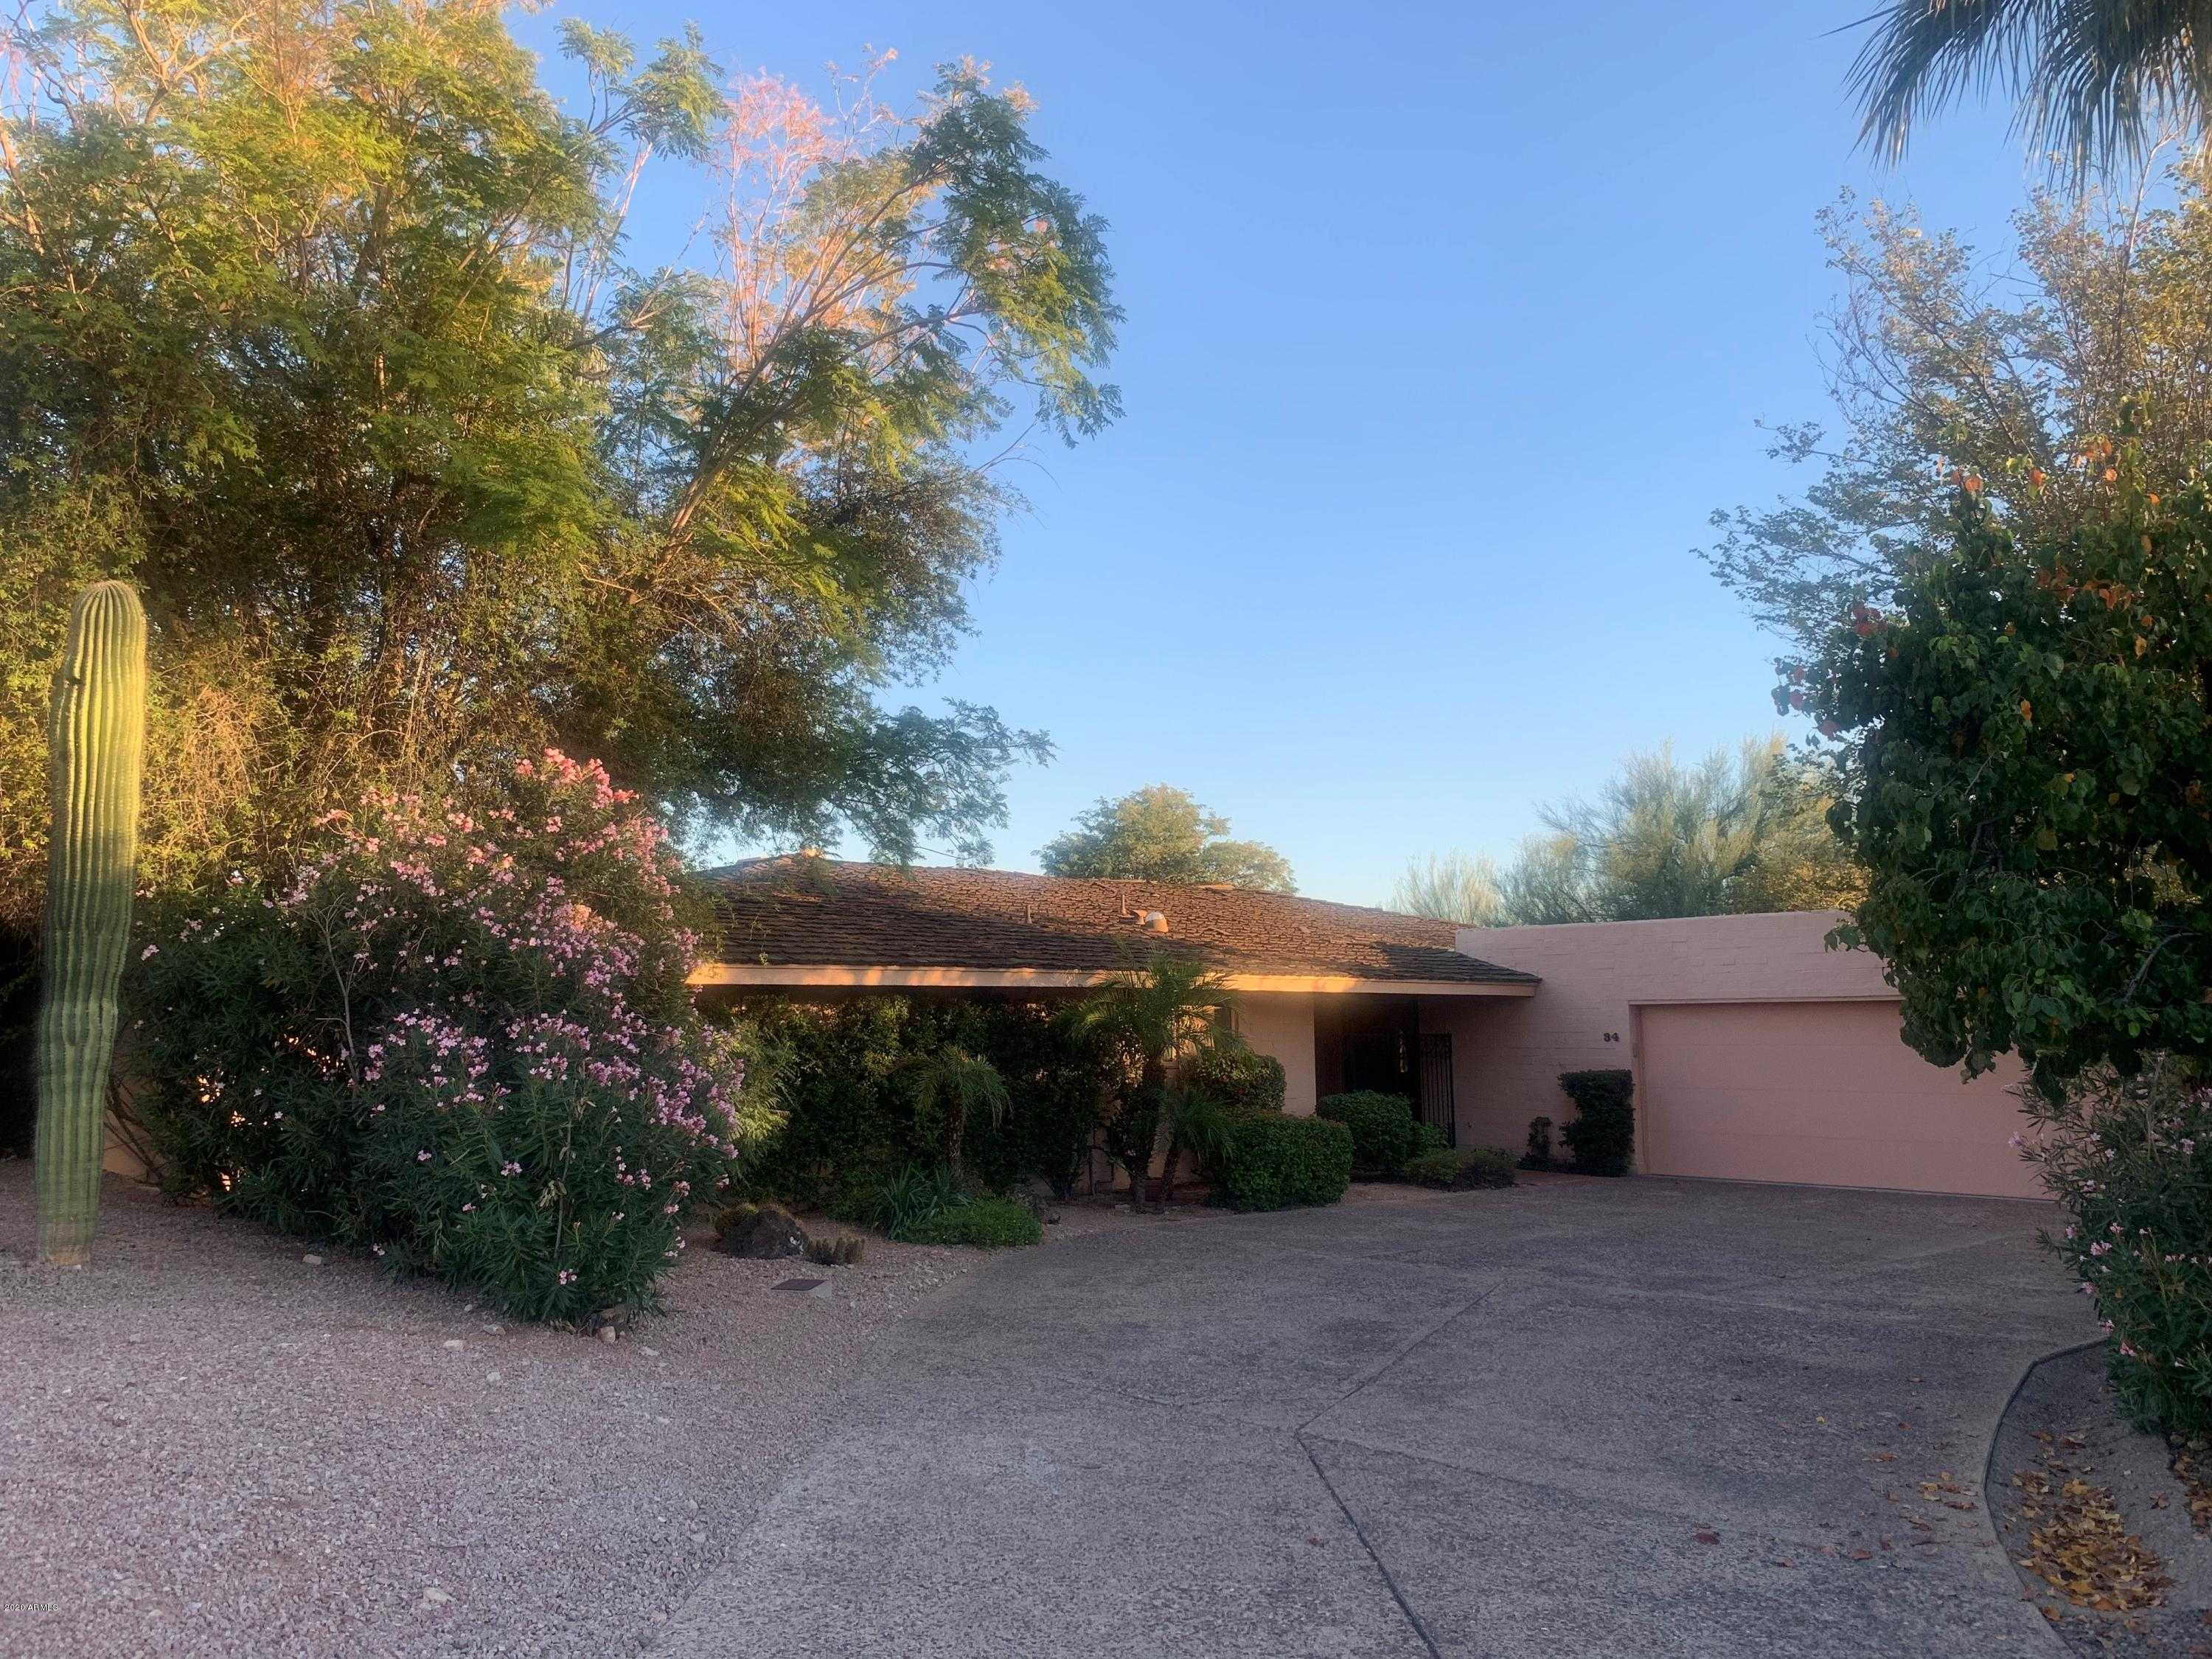 $1,350,000 - 2Br/2Ba - Home for Sale in Colonia Miramonte Unit 2, Paradise Valley